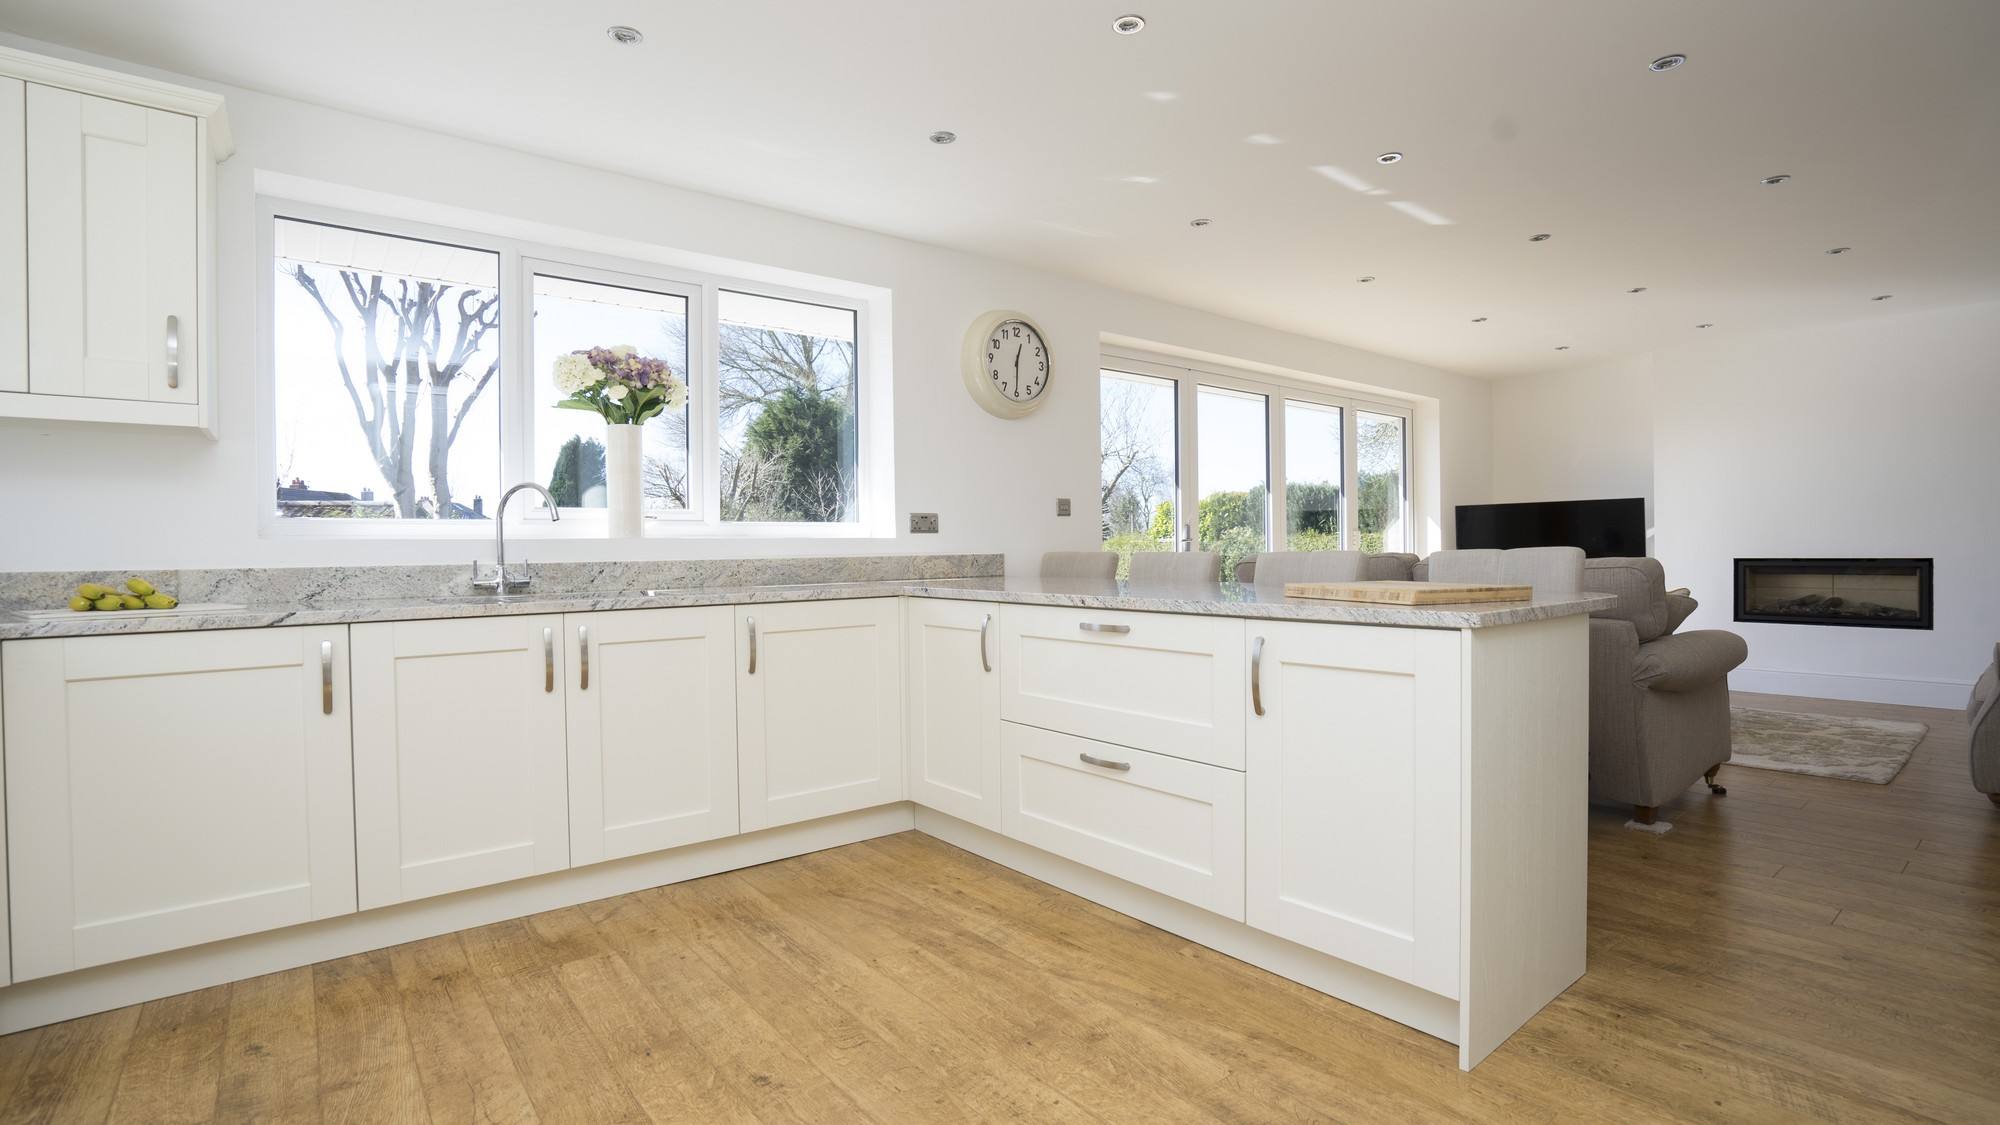 Case Studies | Cleveland Kitchens Liverpool